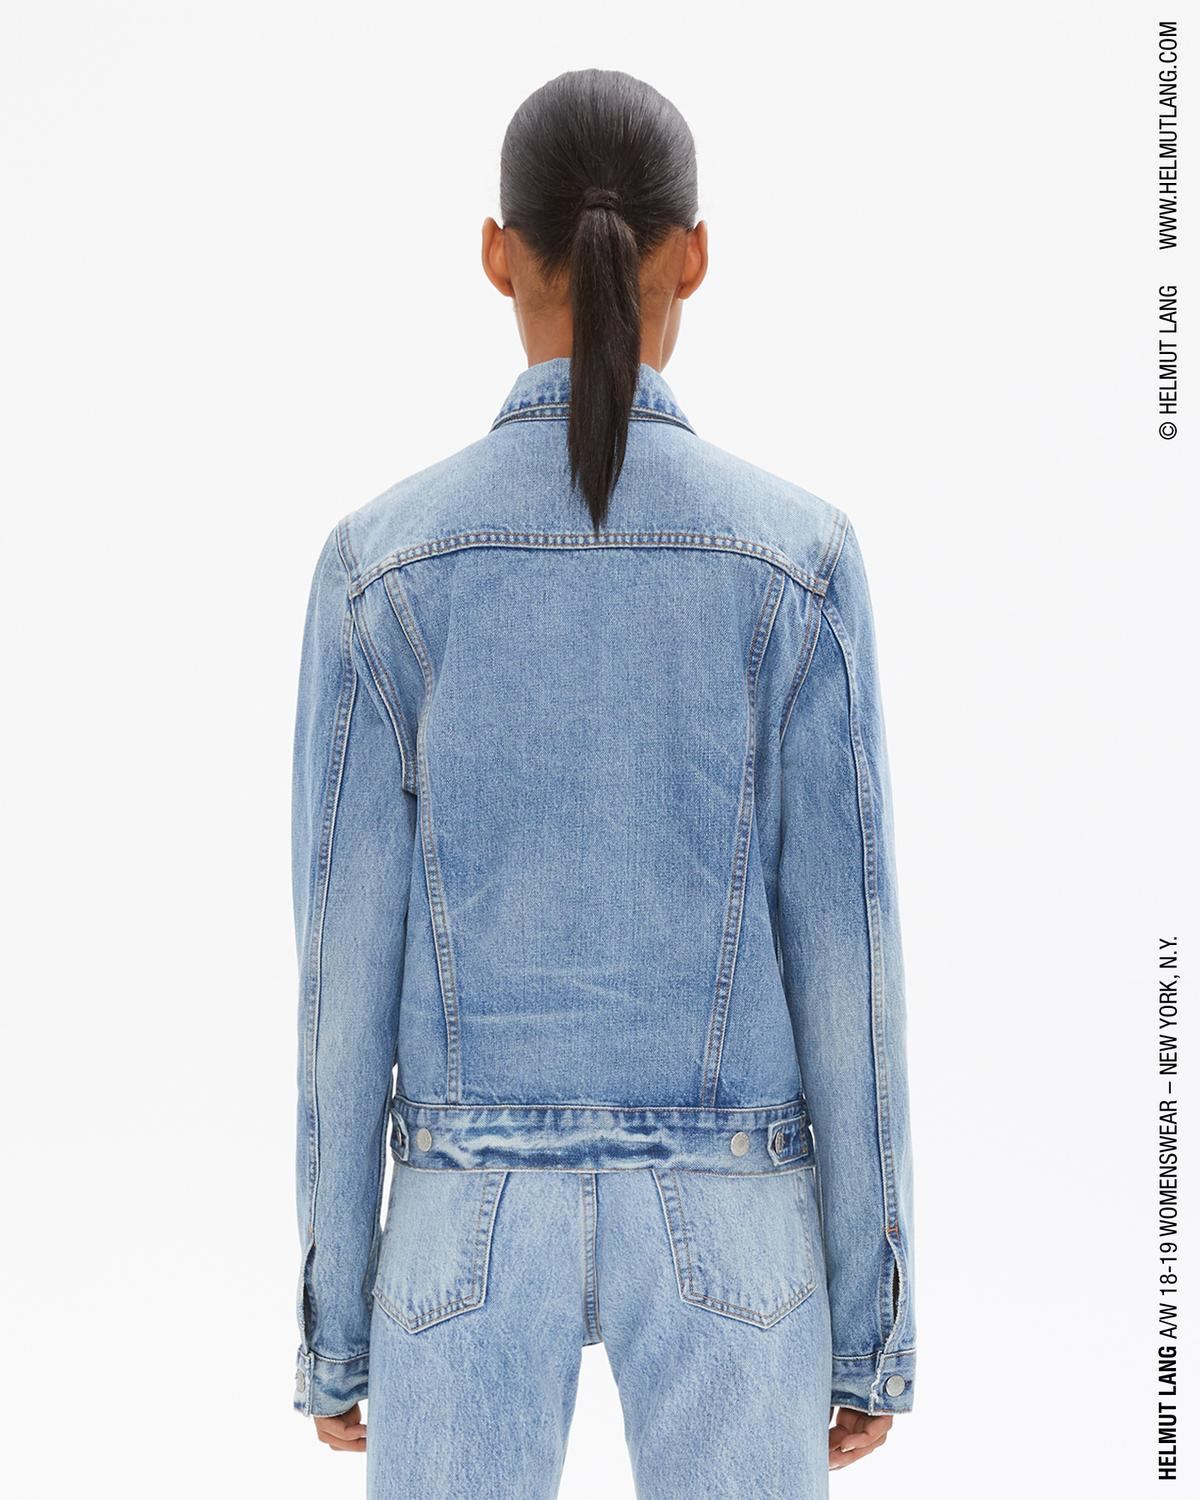 SQUARE SHOULDER DENIM JACKET